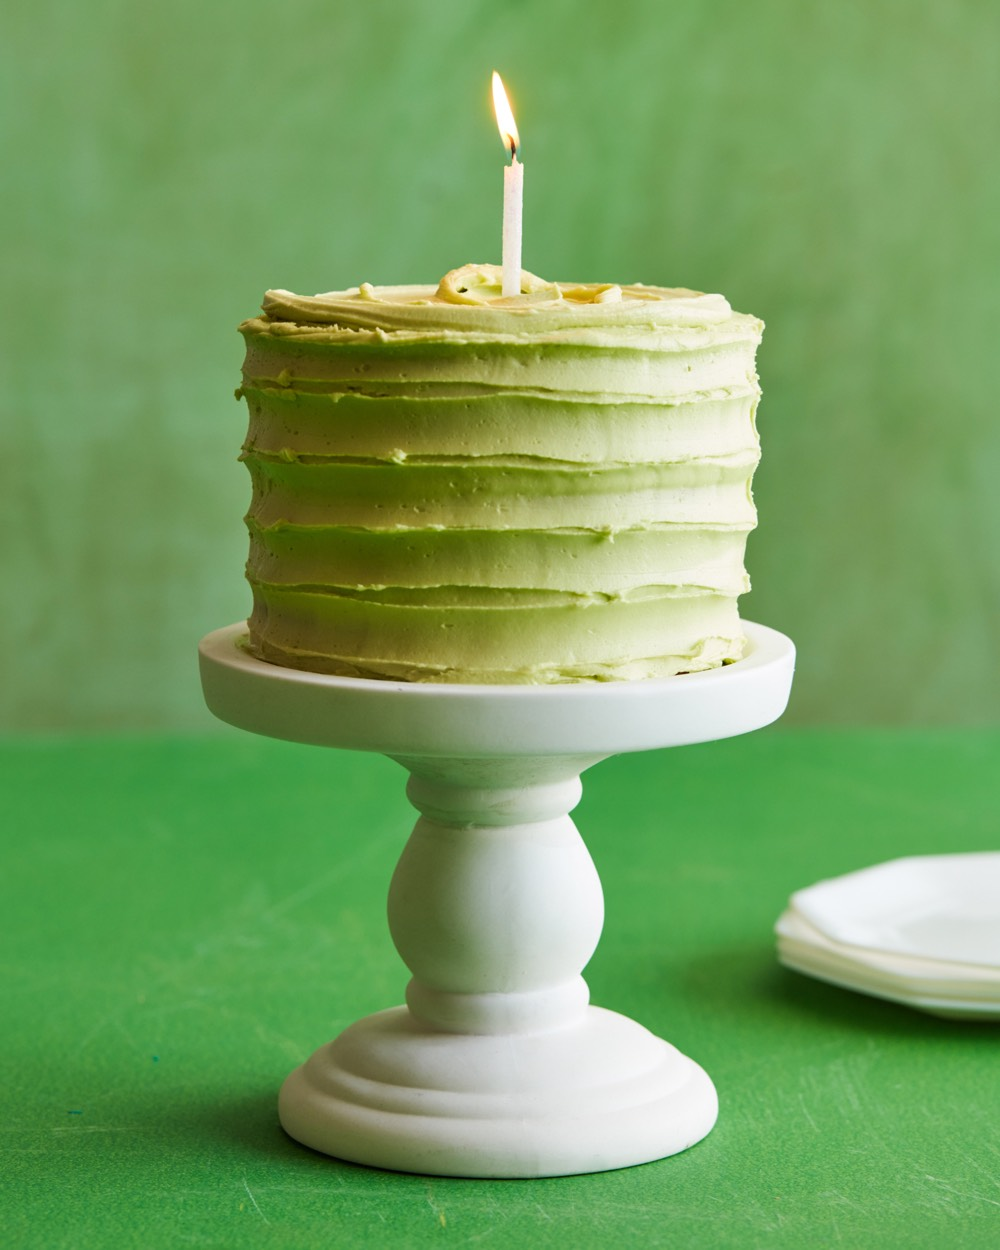 Spinach Smash Cake recipe from weelicious.com